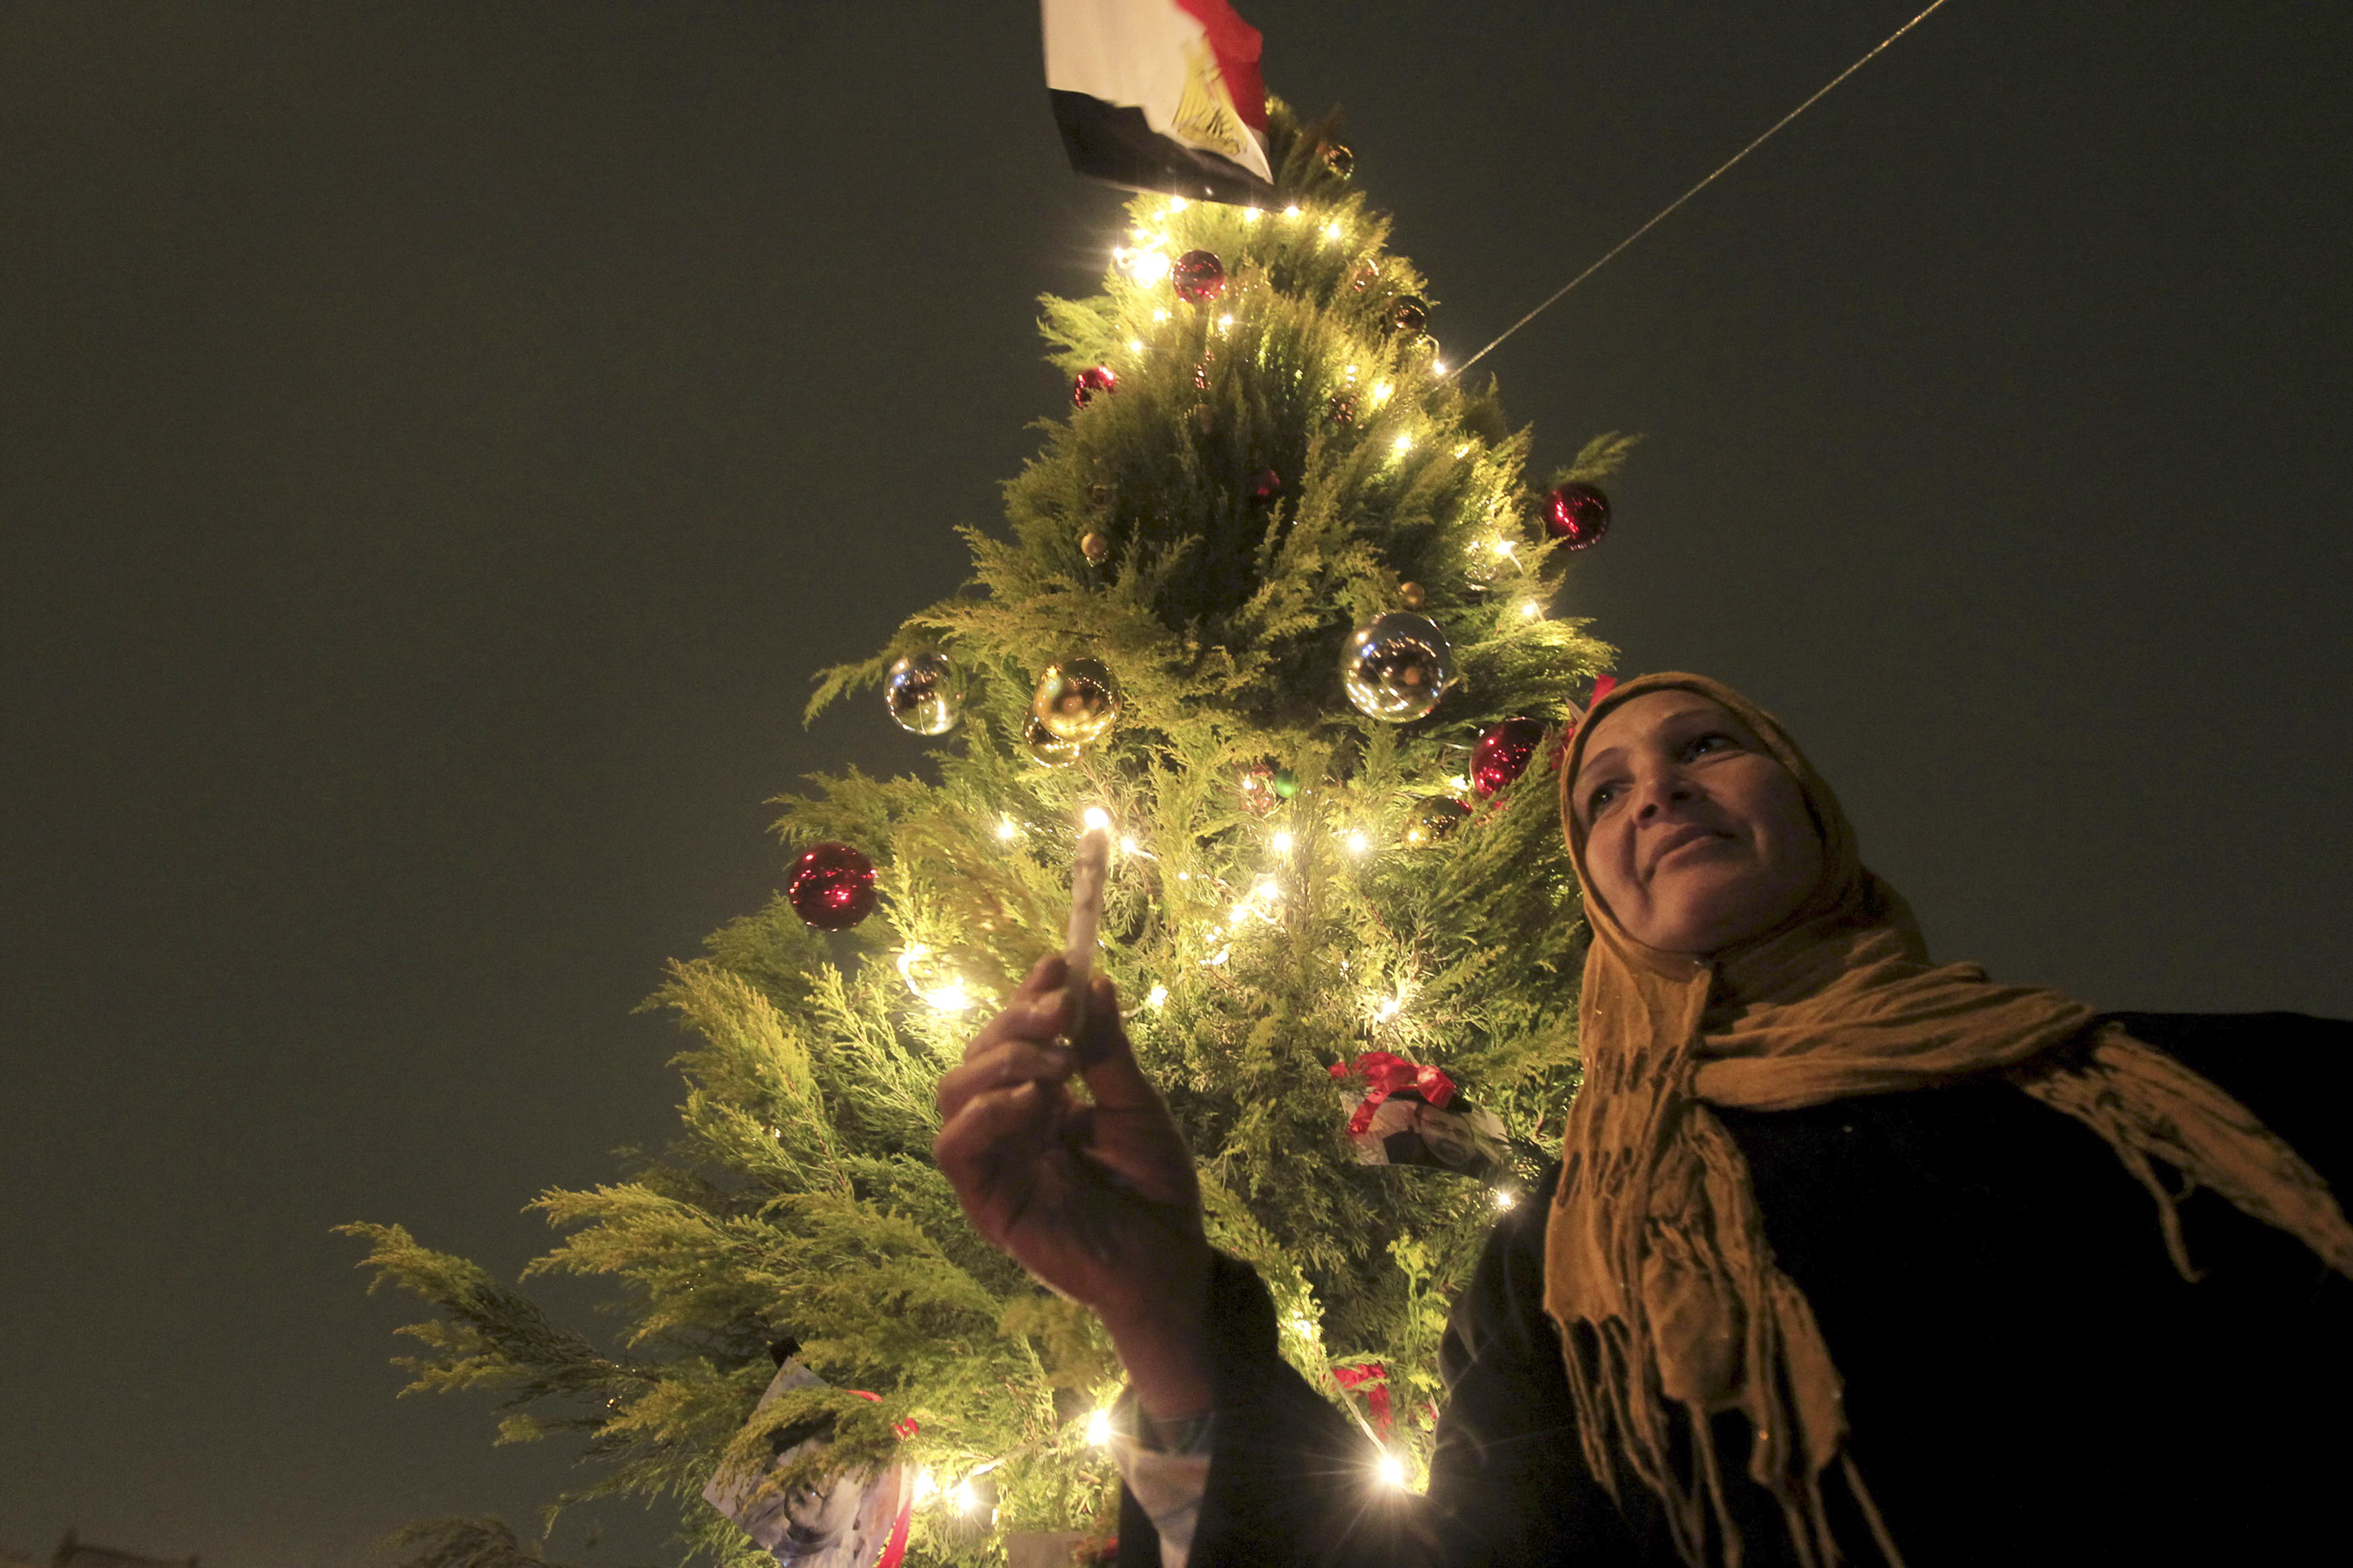 Christmas Confusion as Copts Experience